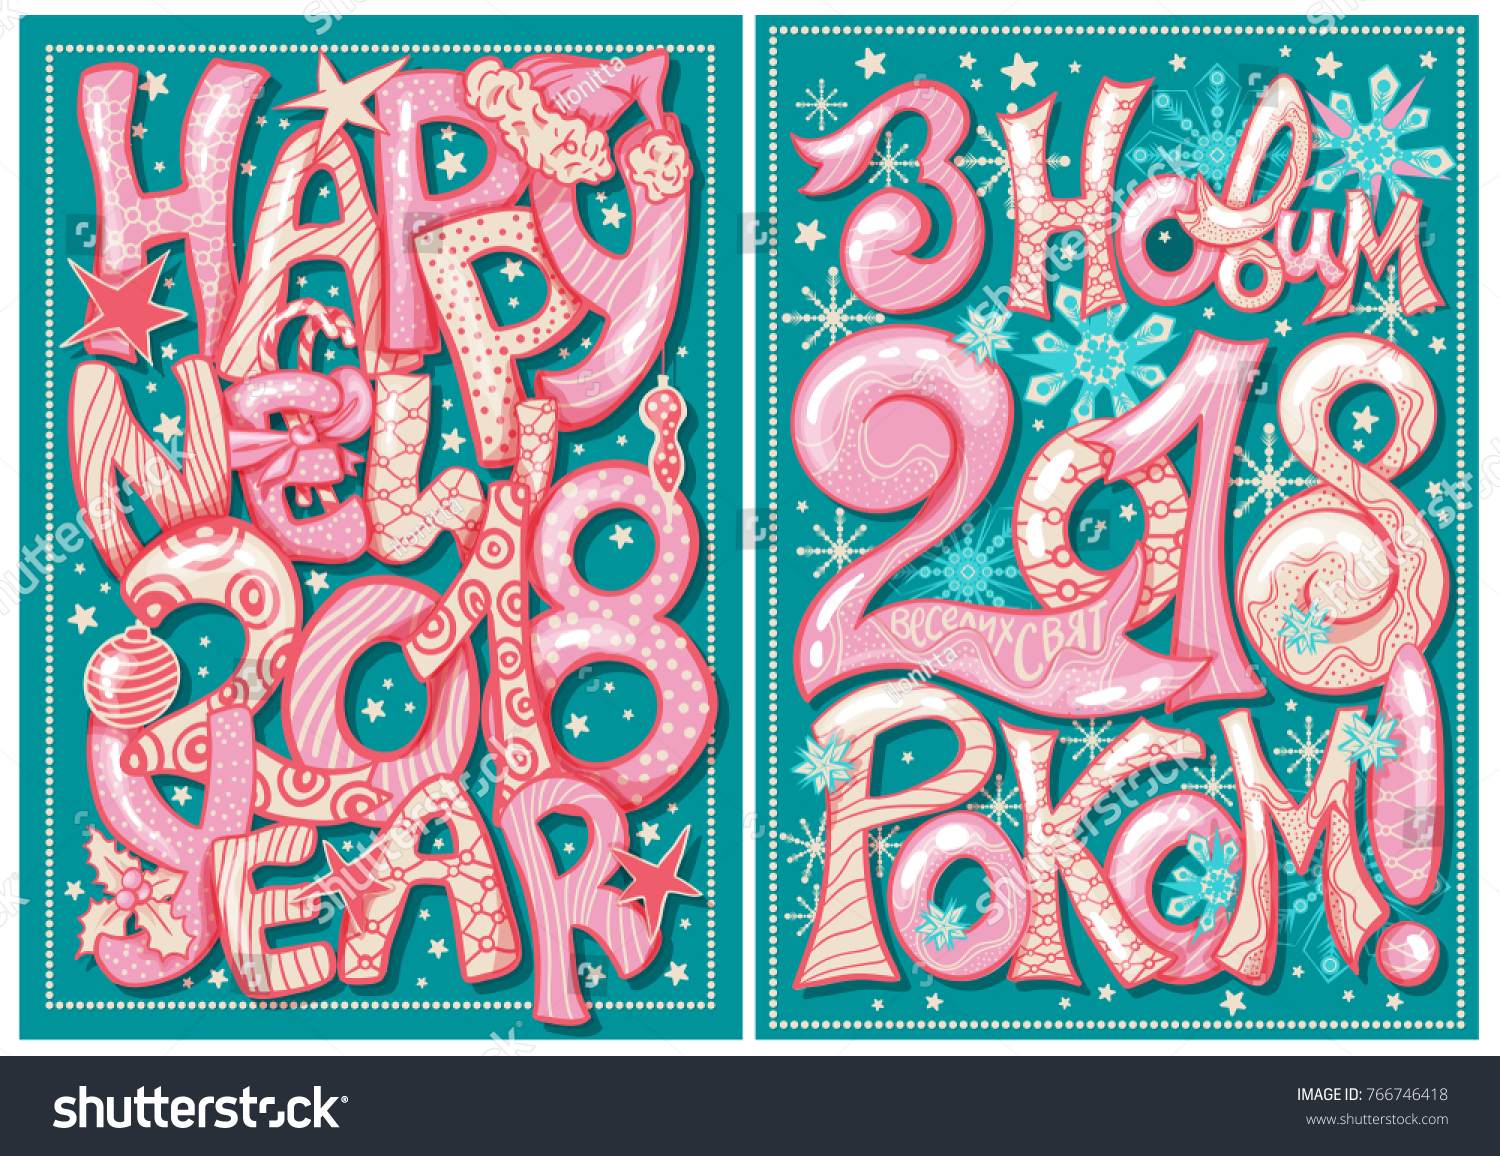 happy new 2018 year gift cards with hand lettering colorful xmas letters with pattern